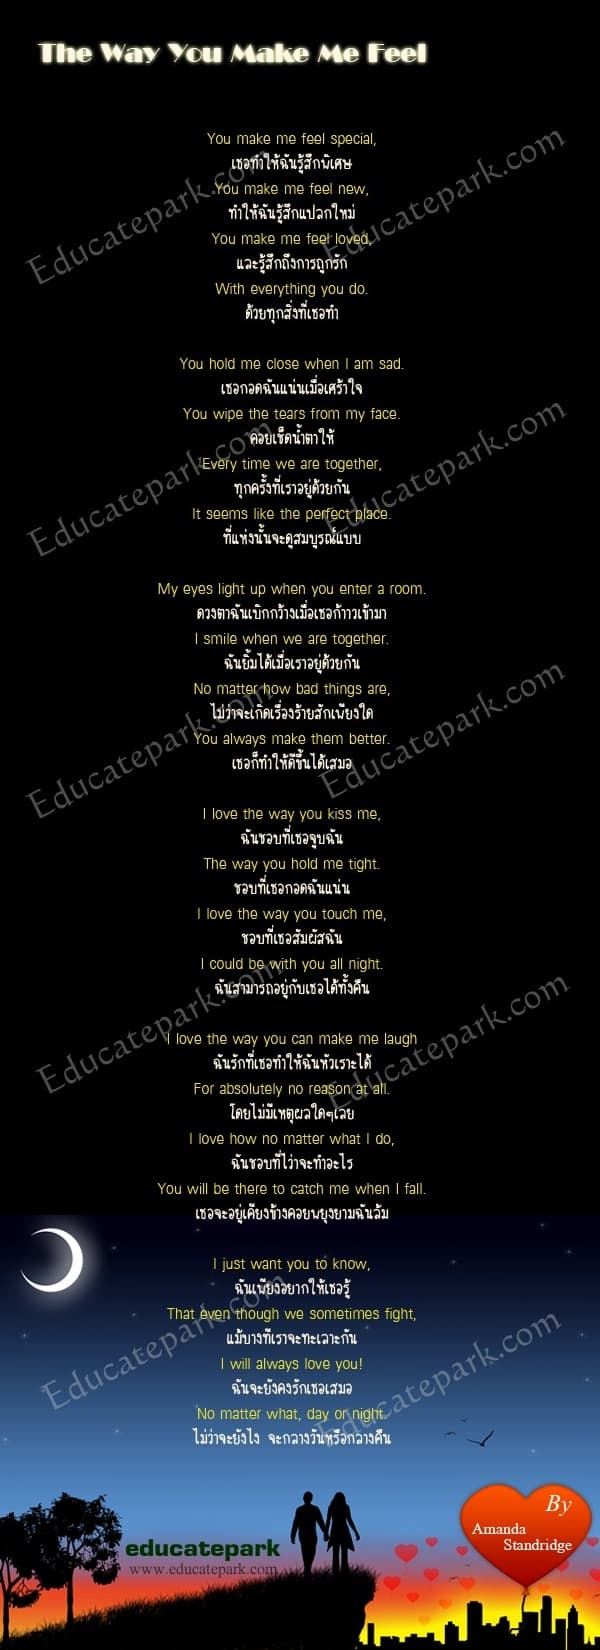 บทกลอน The Way You Make Me Feel - Amanda Standridge